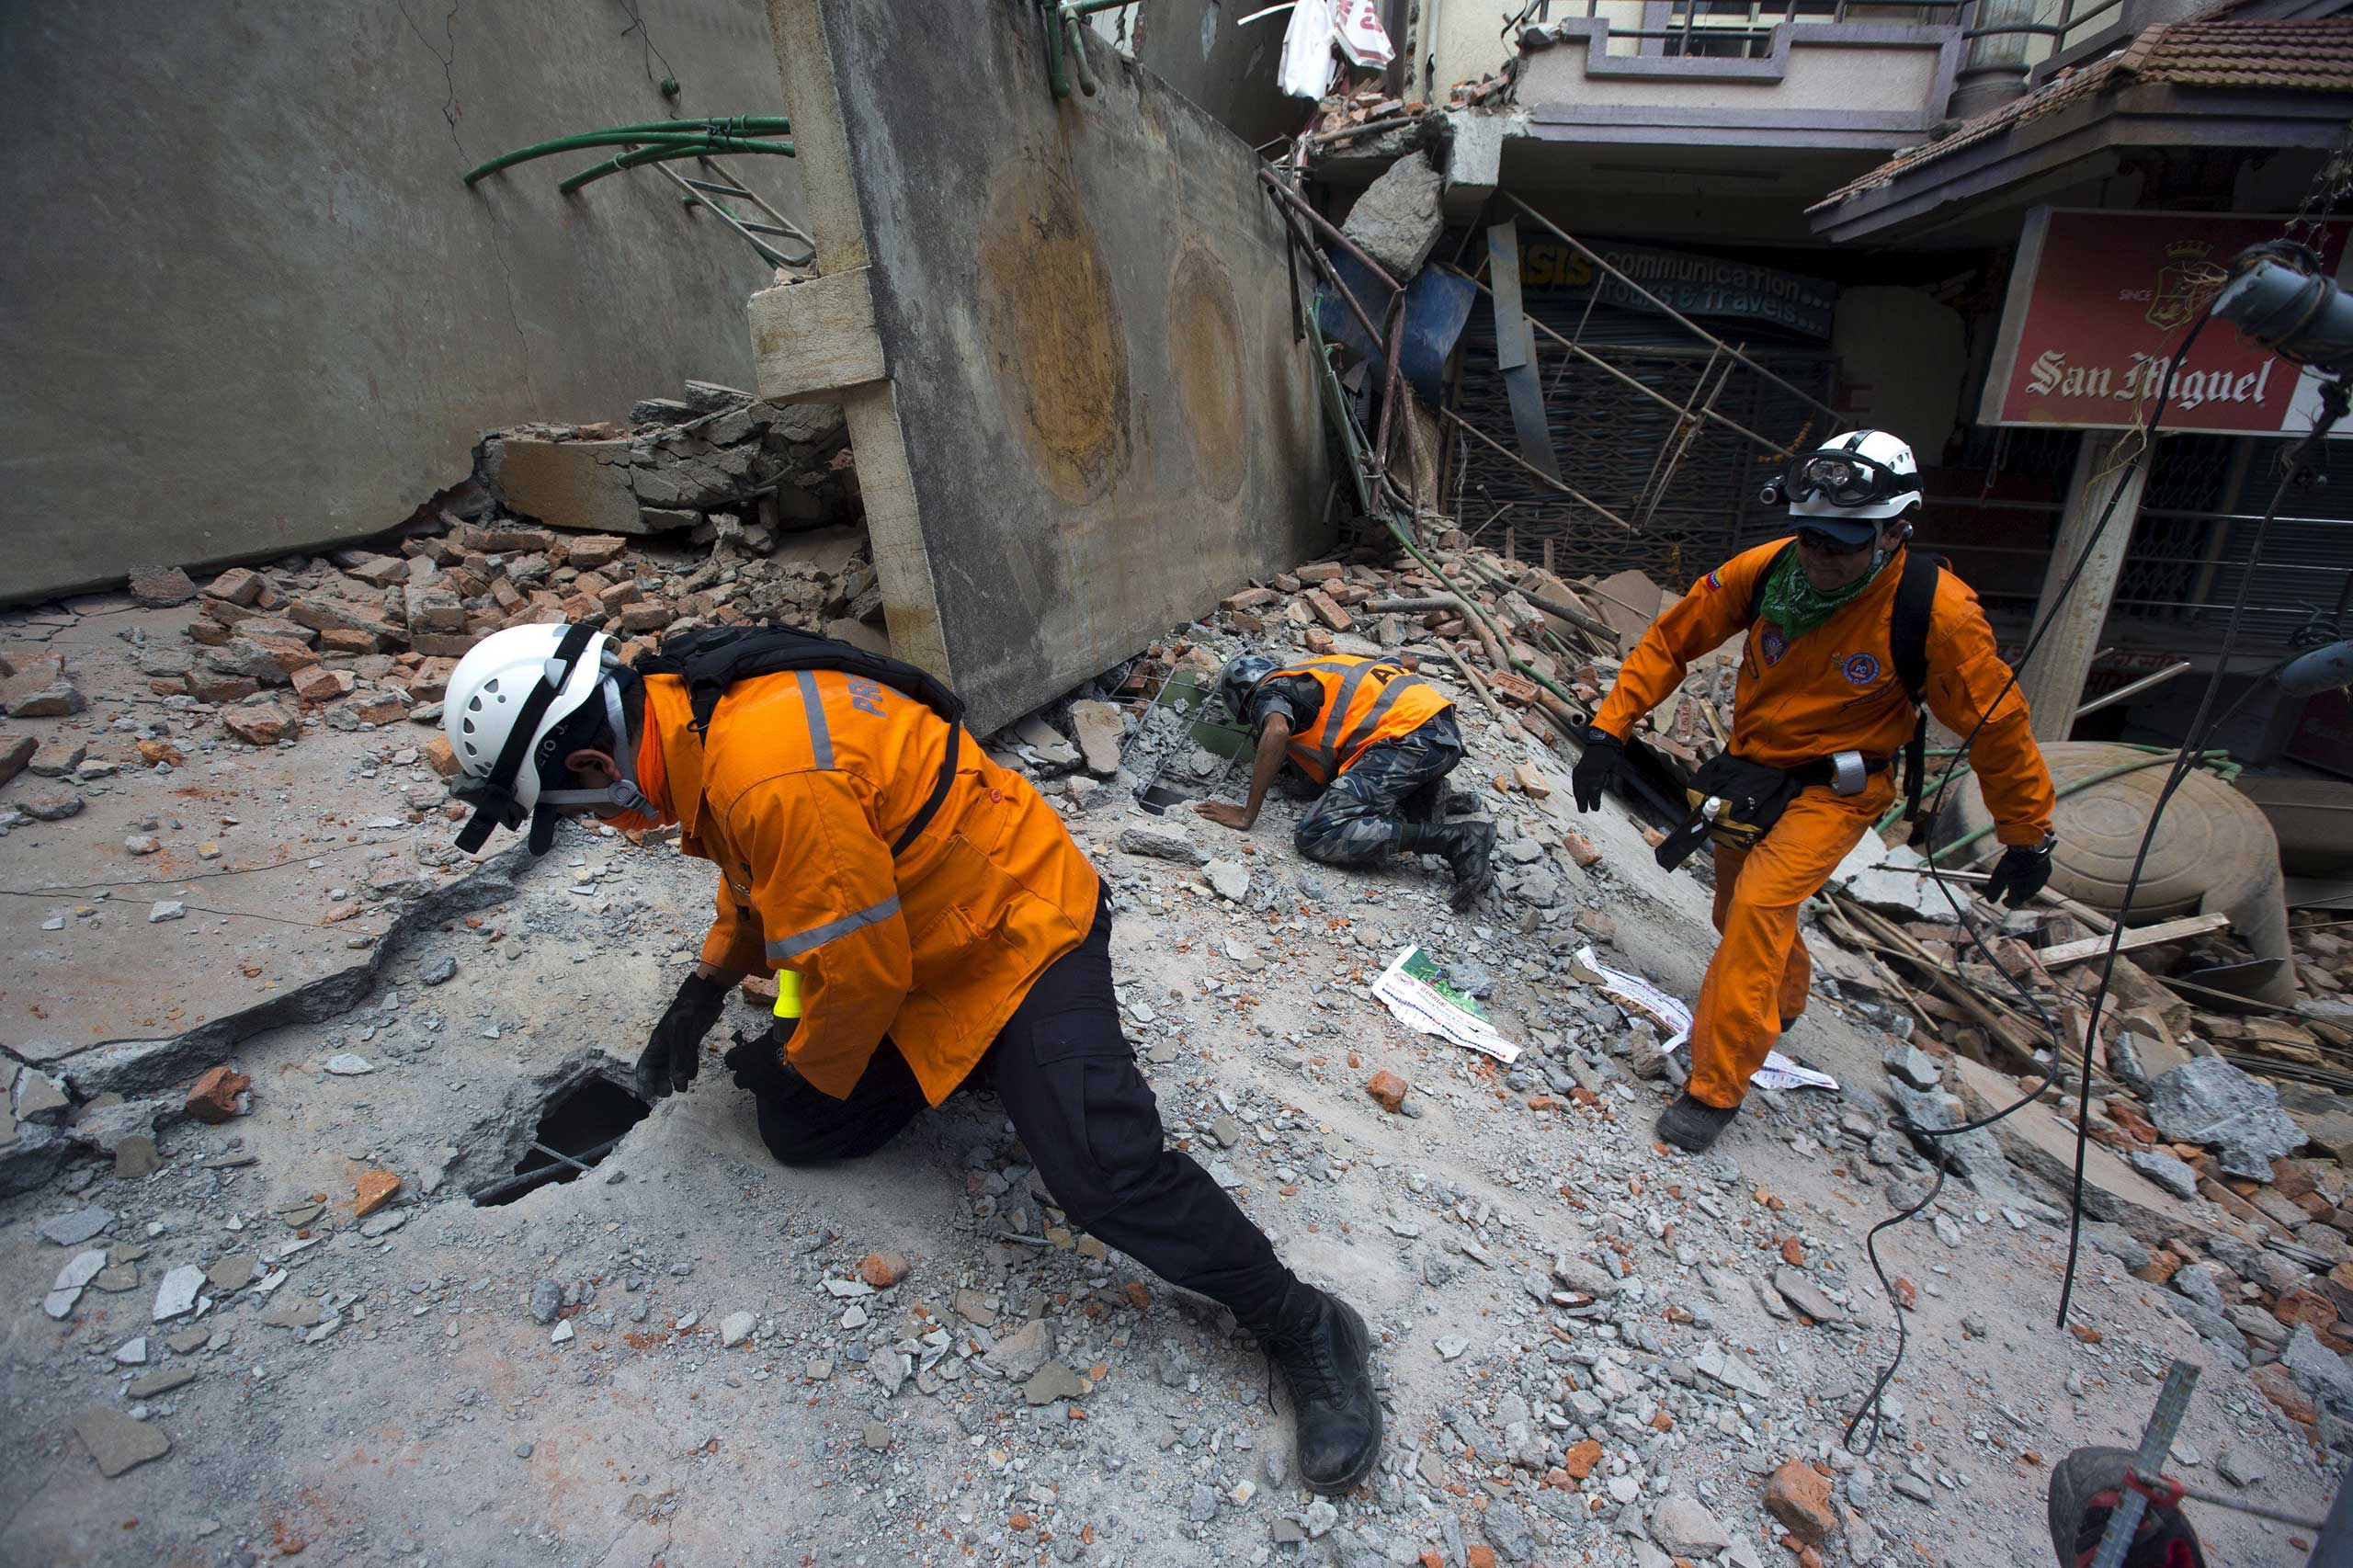 Nepalese military personnel and International rescue check on a collapsed building after an earthquake in the centre of Kathmandu on May 12, 2015.